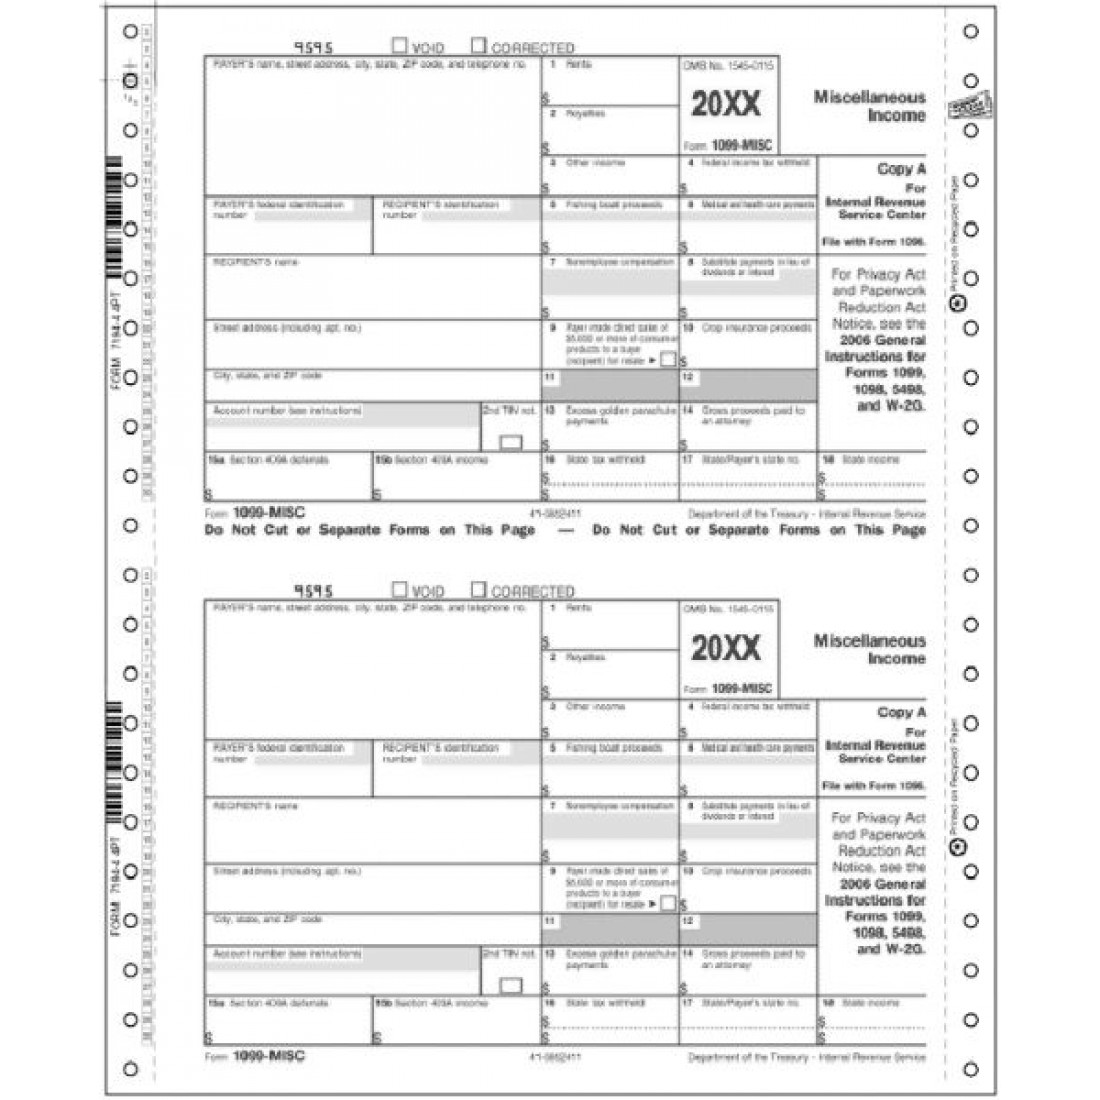 Continuous 1099 MISC IRS Tax Forms